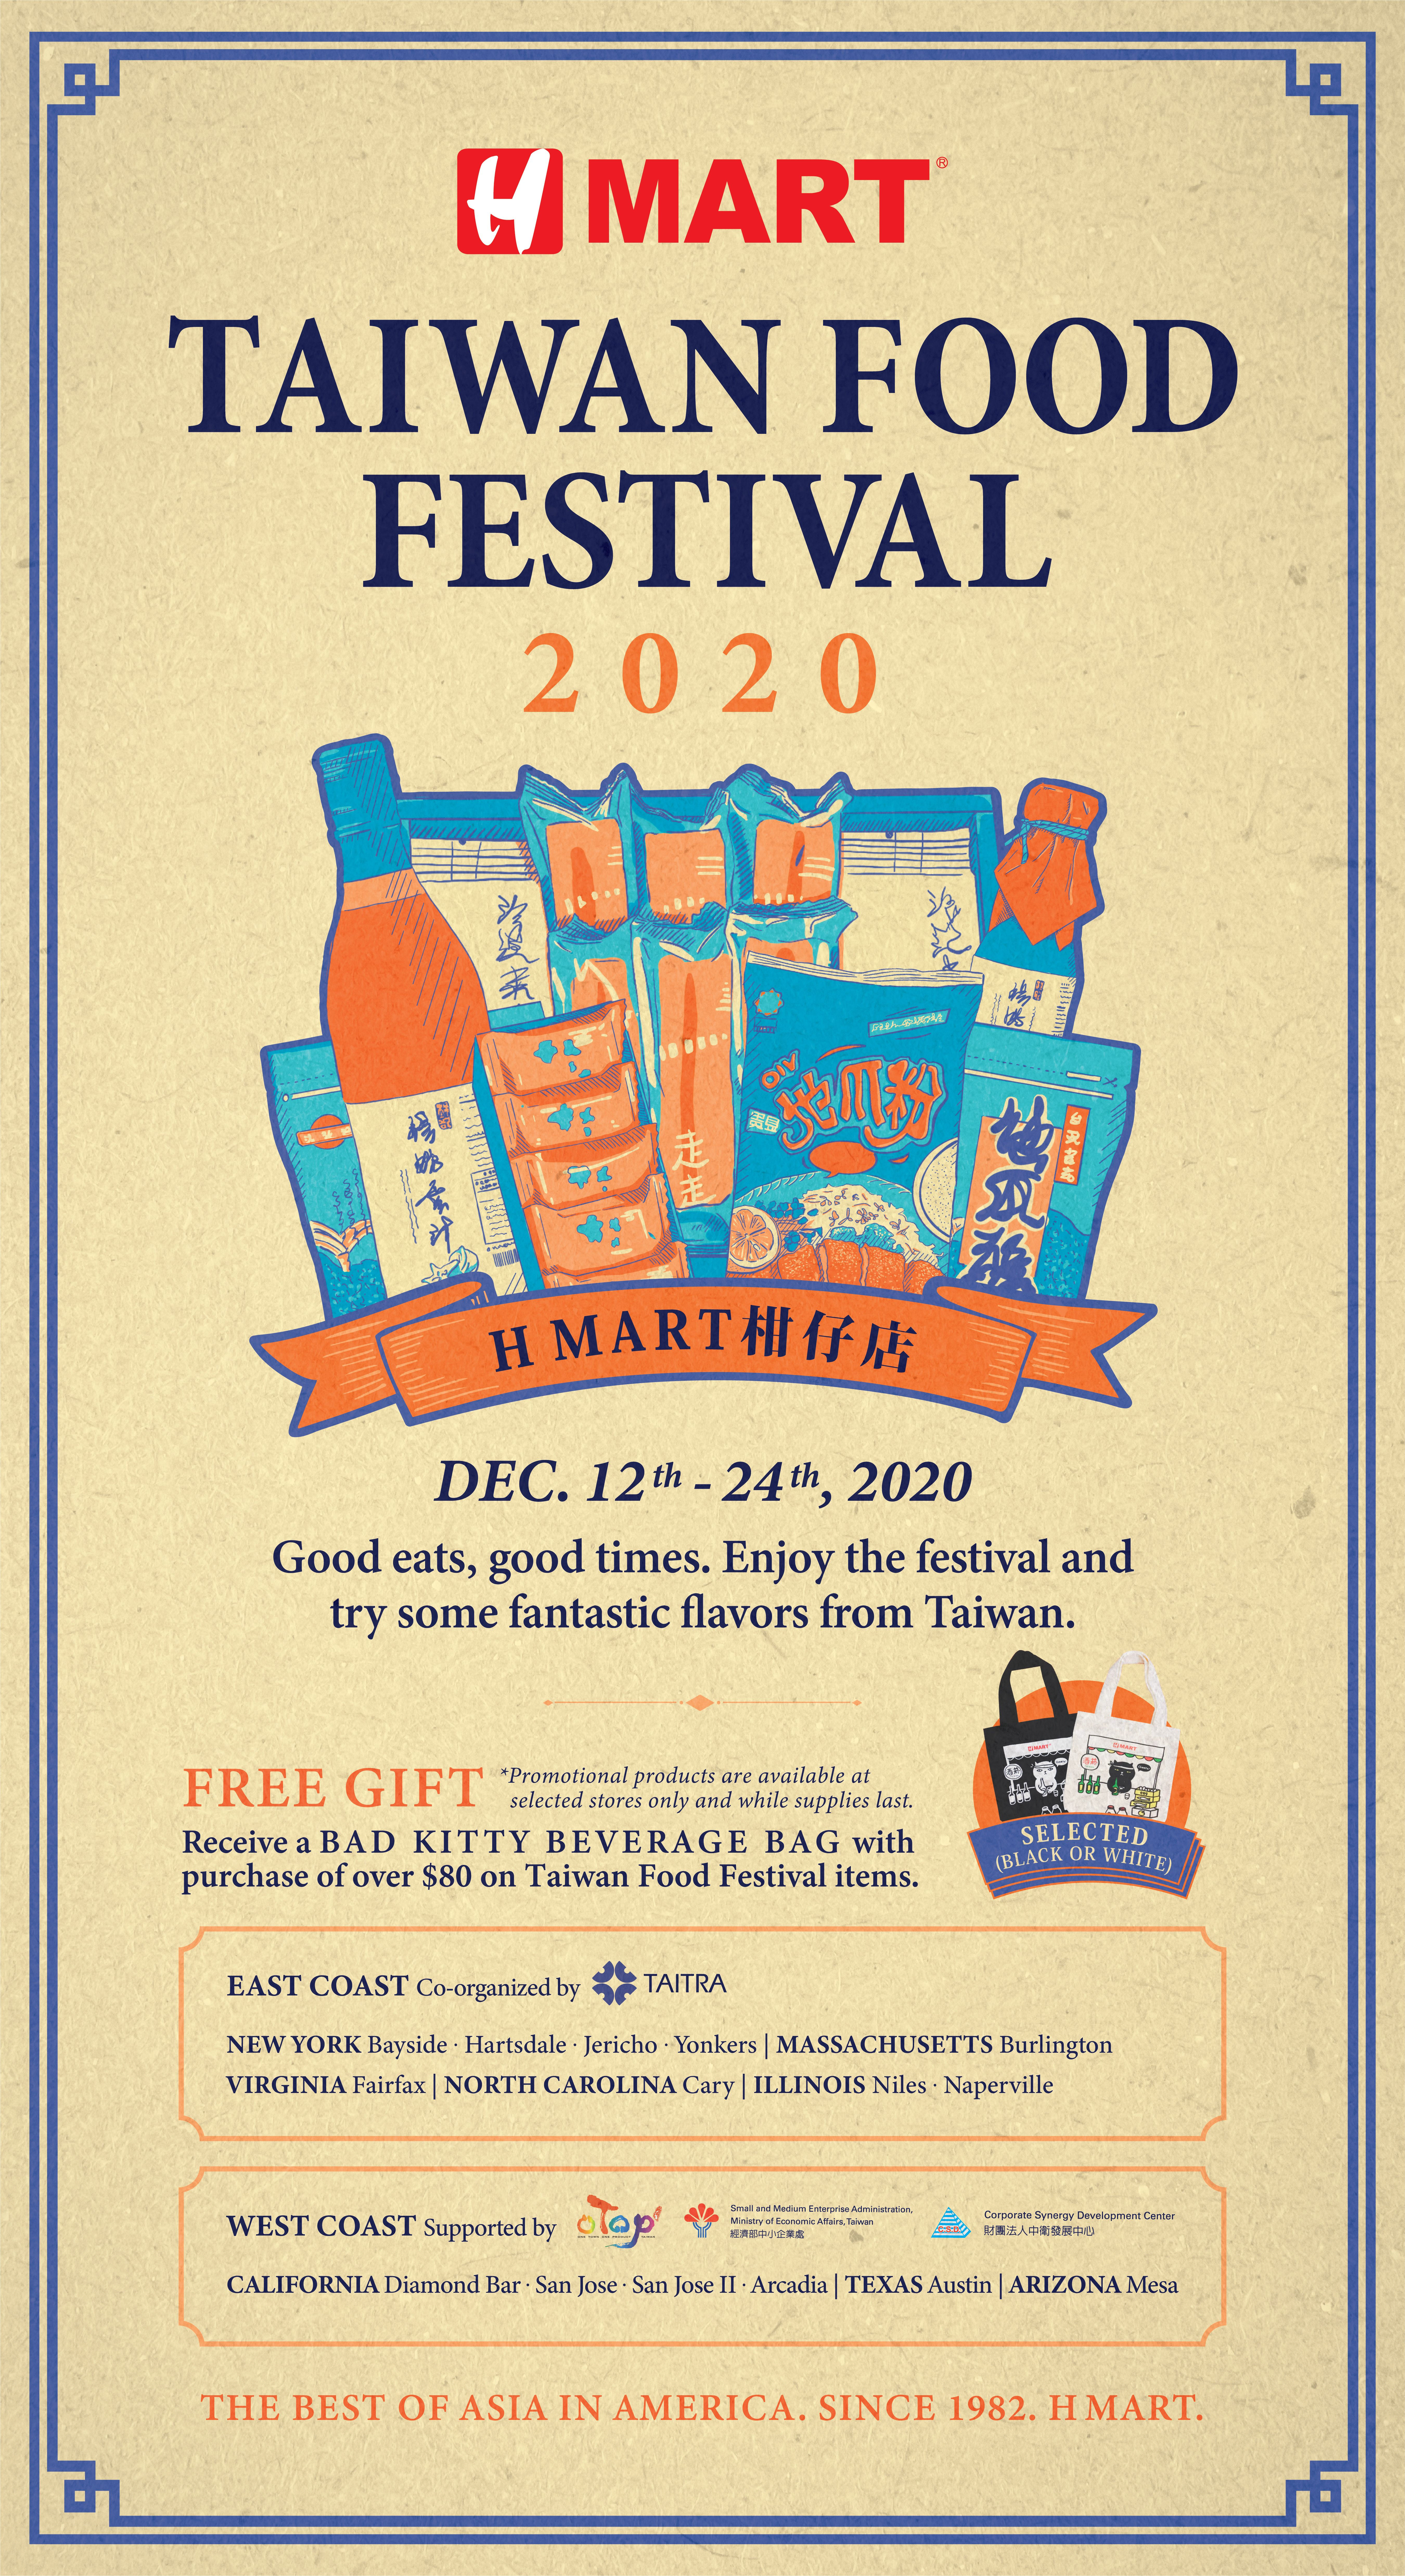 2020 taiwan food festival_ourstory 01